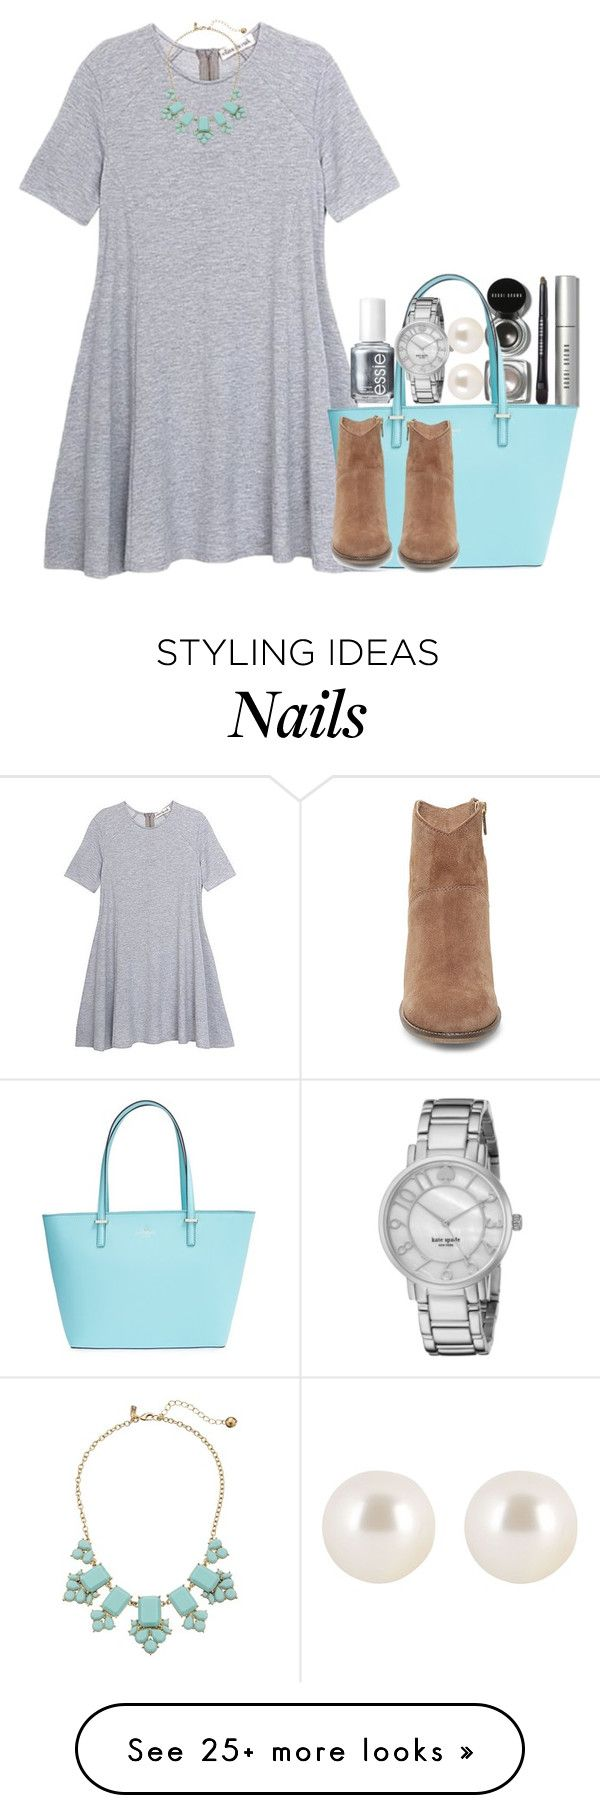 """""""never use makeup so here ya go!!!"""" by econgdon on Polyvore featuring Olive + Oak, Bobbi Brown Cosmetics, Kate Spade, Steve Madden, Henri Bendel and Essie"""